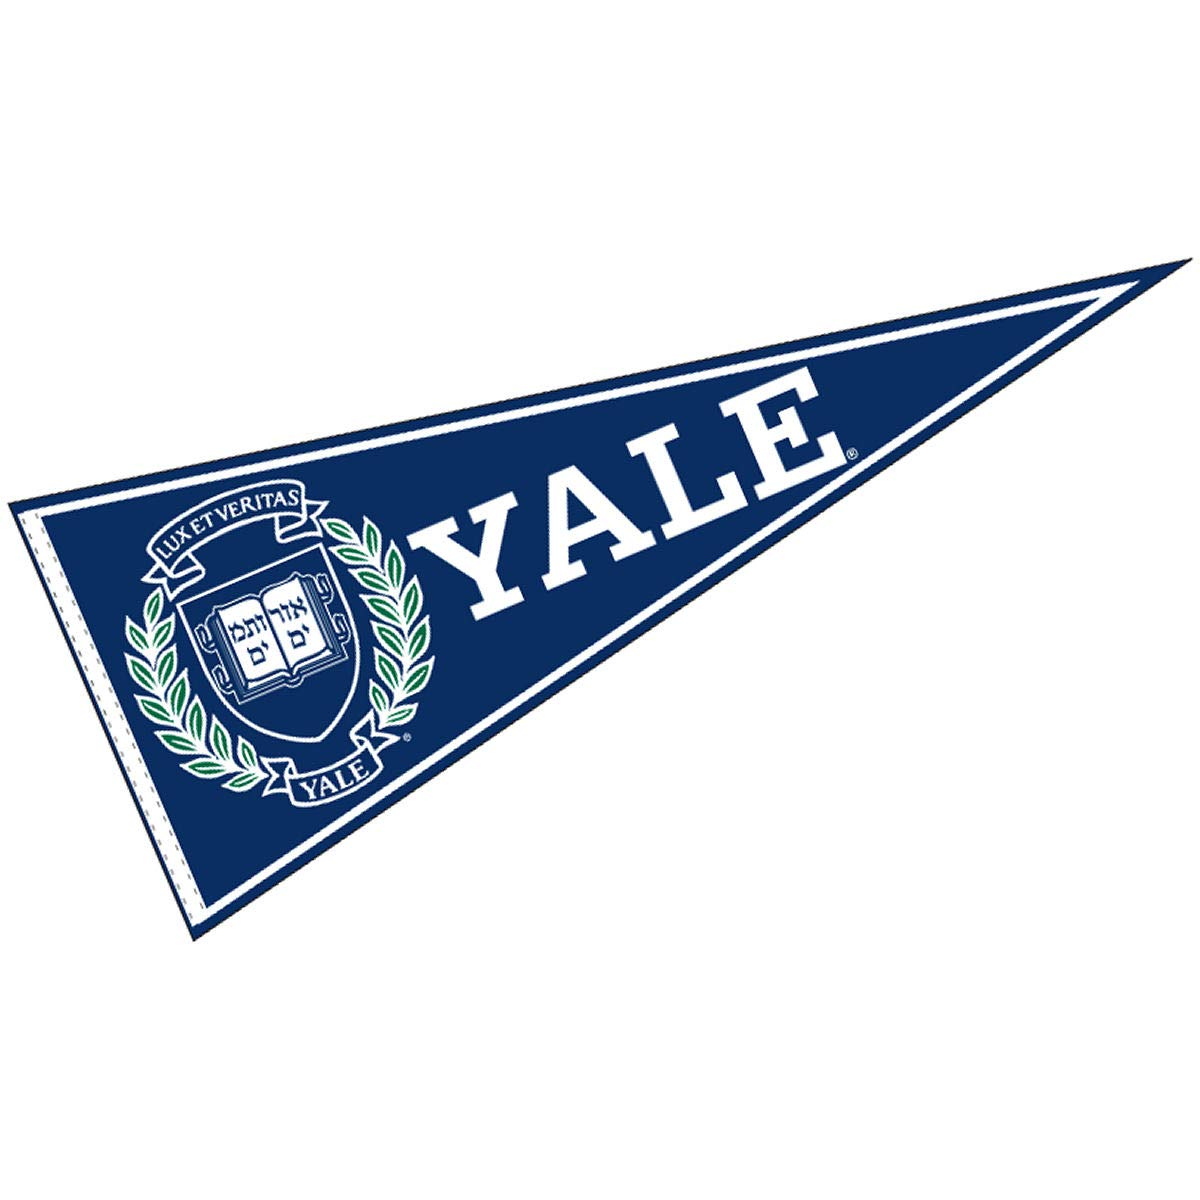 College Flags & Banners Co. Yale Pennant Full Size Felt